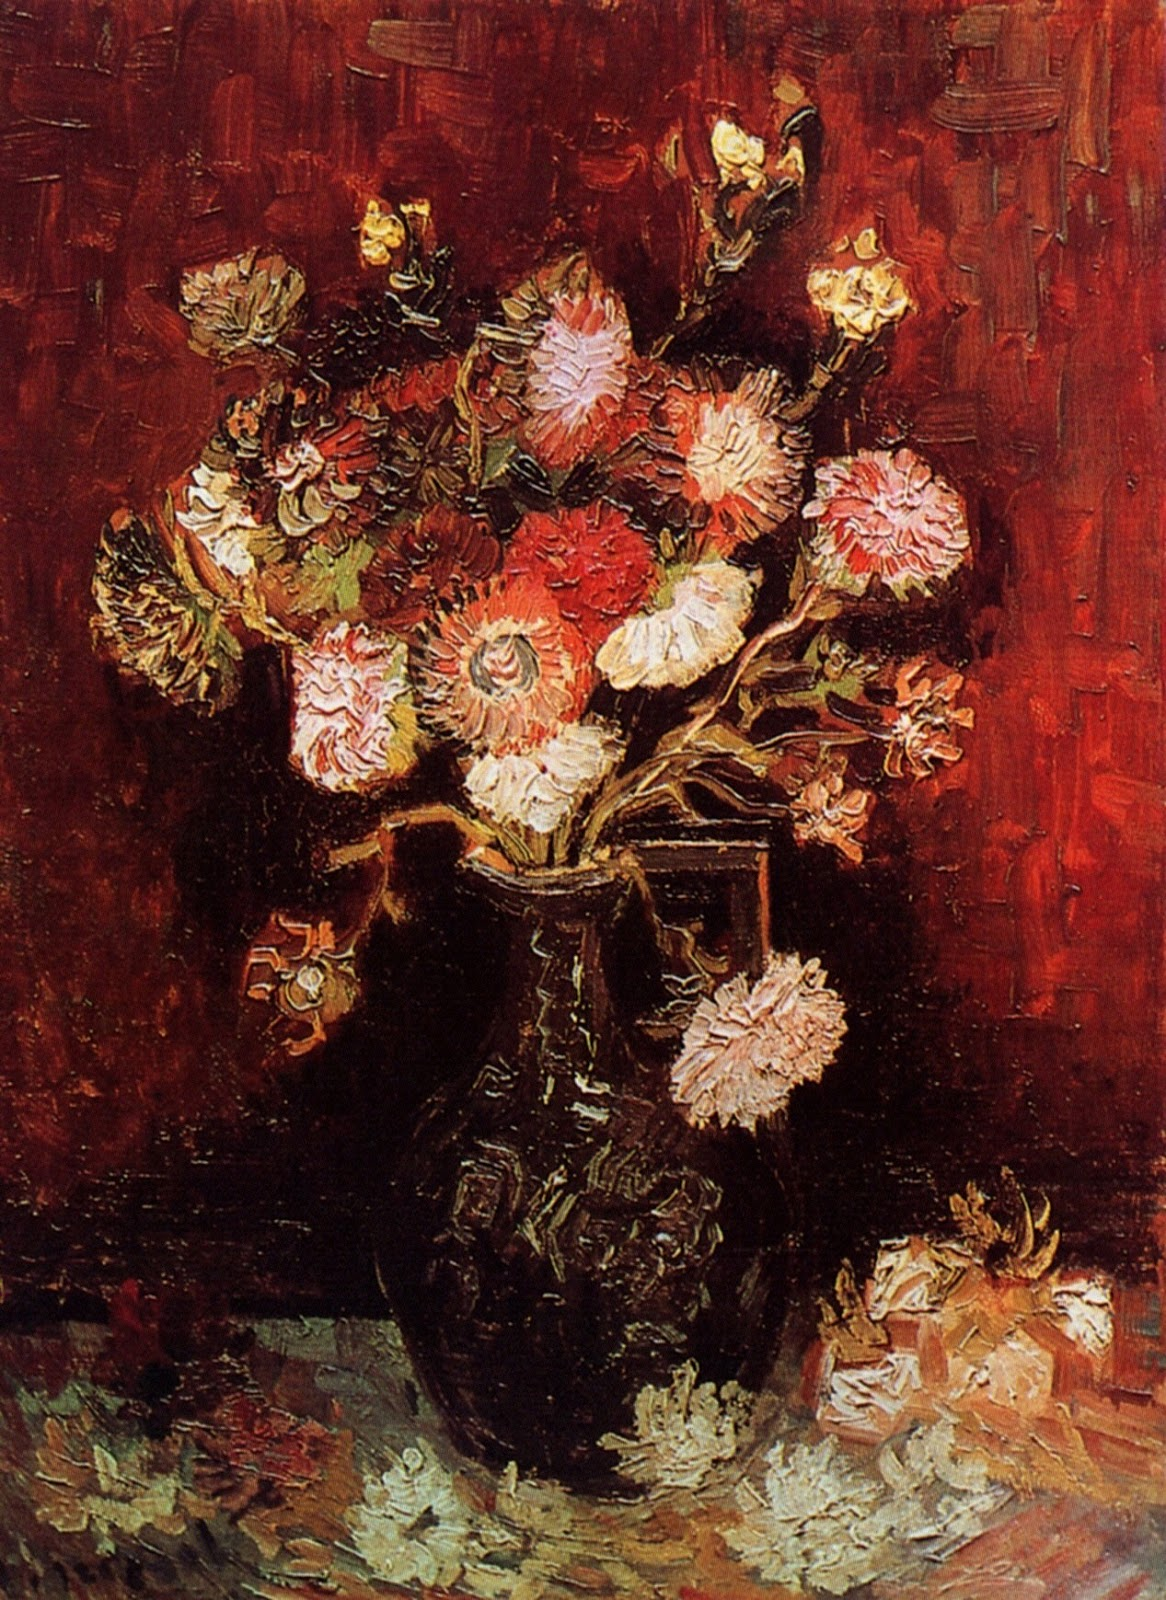 Art artists vincent van gogh flowers part 1 1886 vase with asters and phlox oil on canvas 61 x 46 cm reviewsmspy